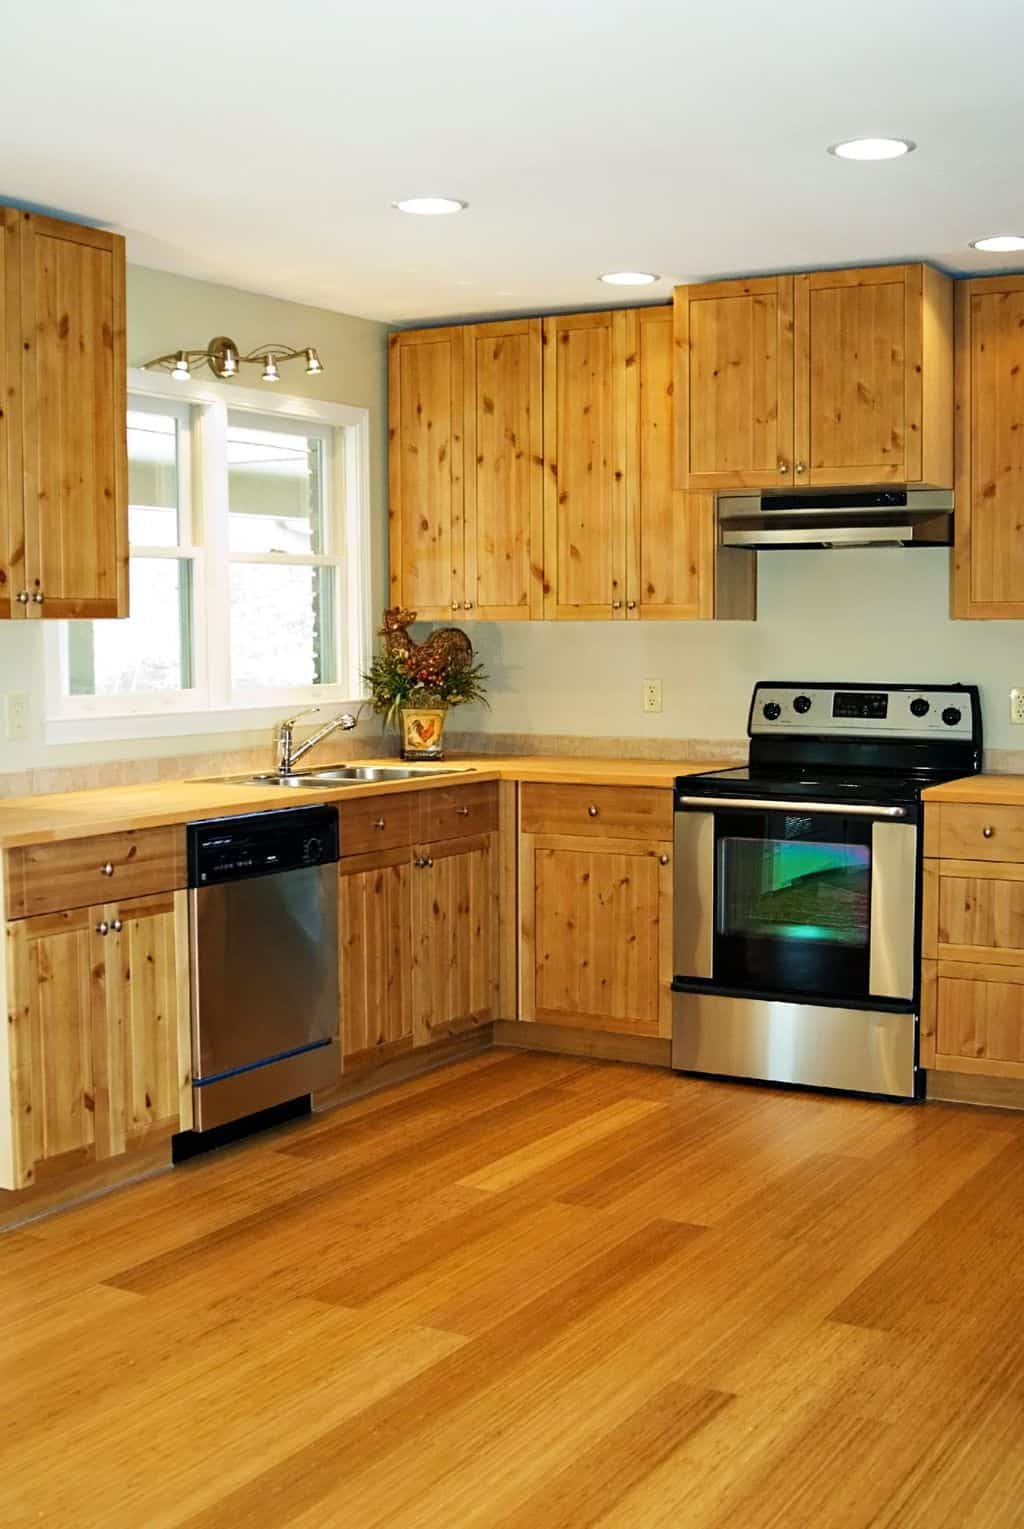 Wood Floor In Kitchen Pros And Cons Top 10 Crucial Bamboo Flooring Pros And Cons Theflooringlady